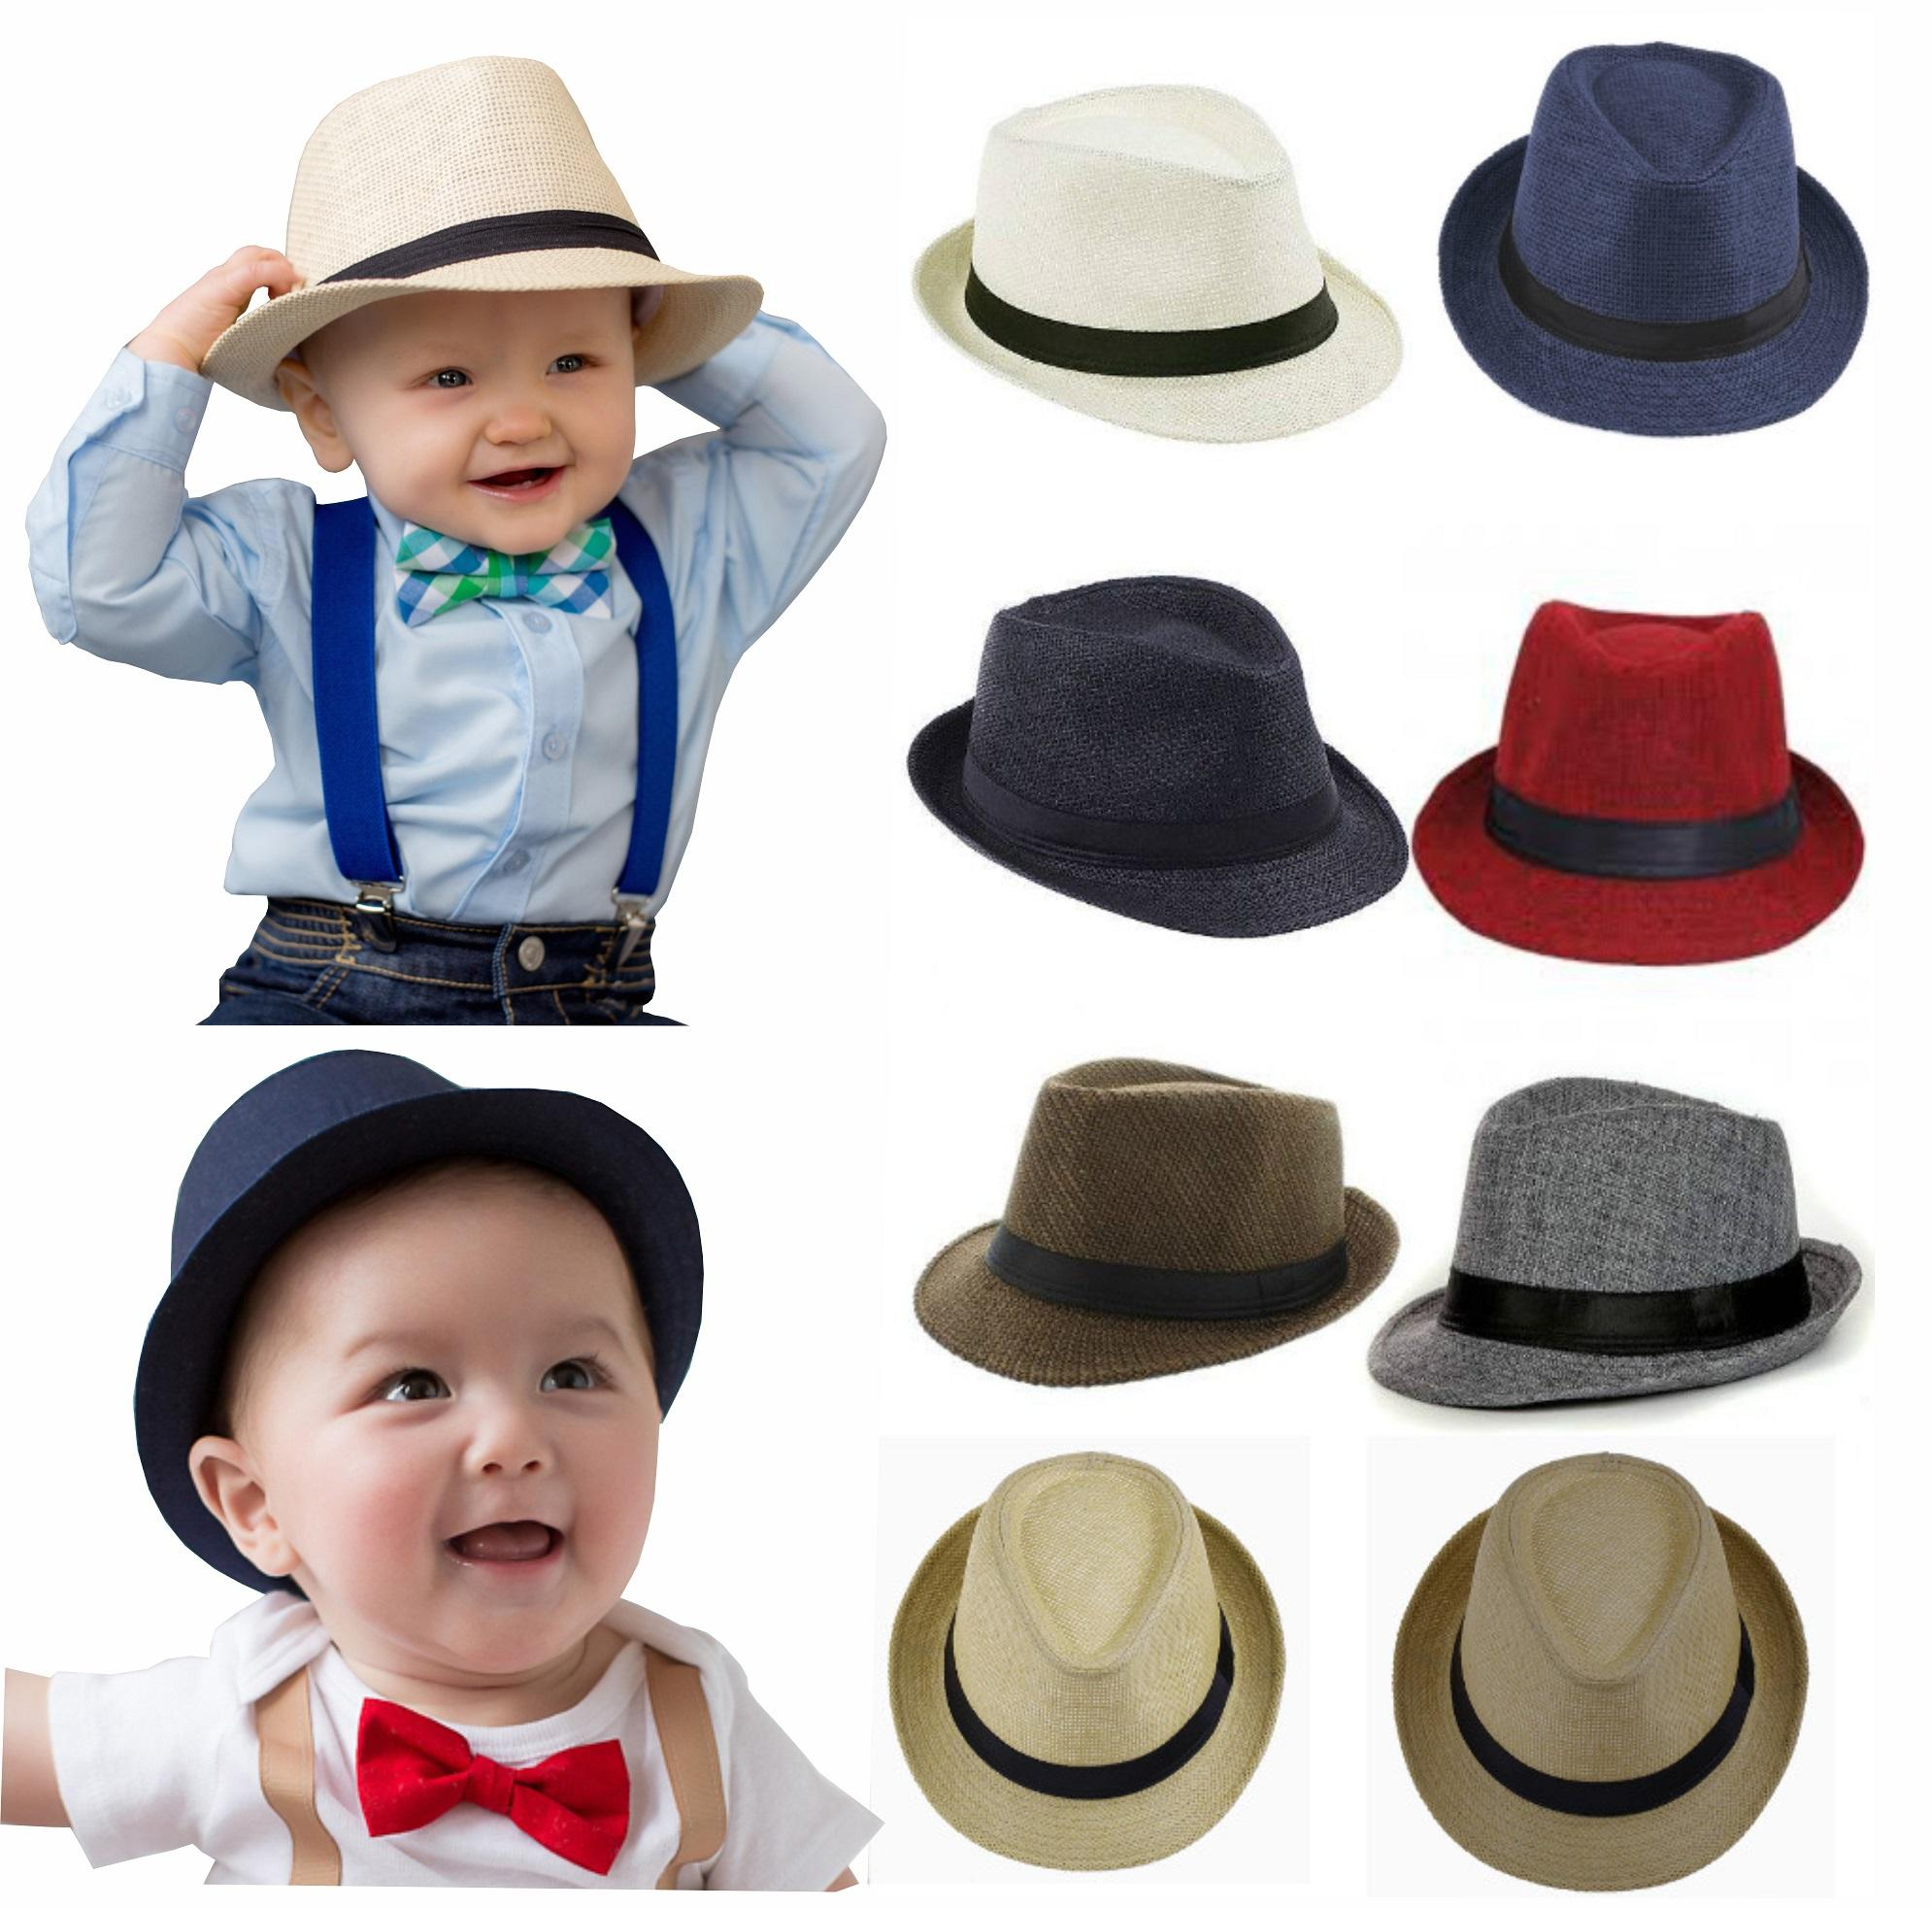 b9b5b795 Boys Caps for sale - Boys Hats Online Deals & Prices in Philippines ...